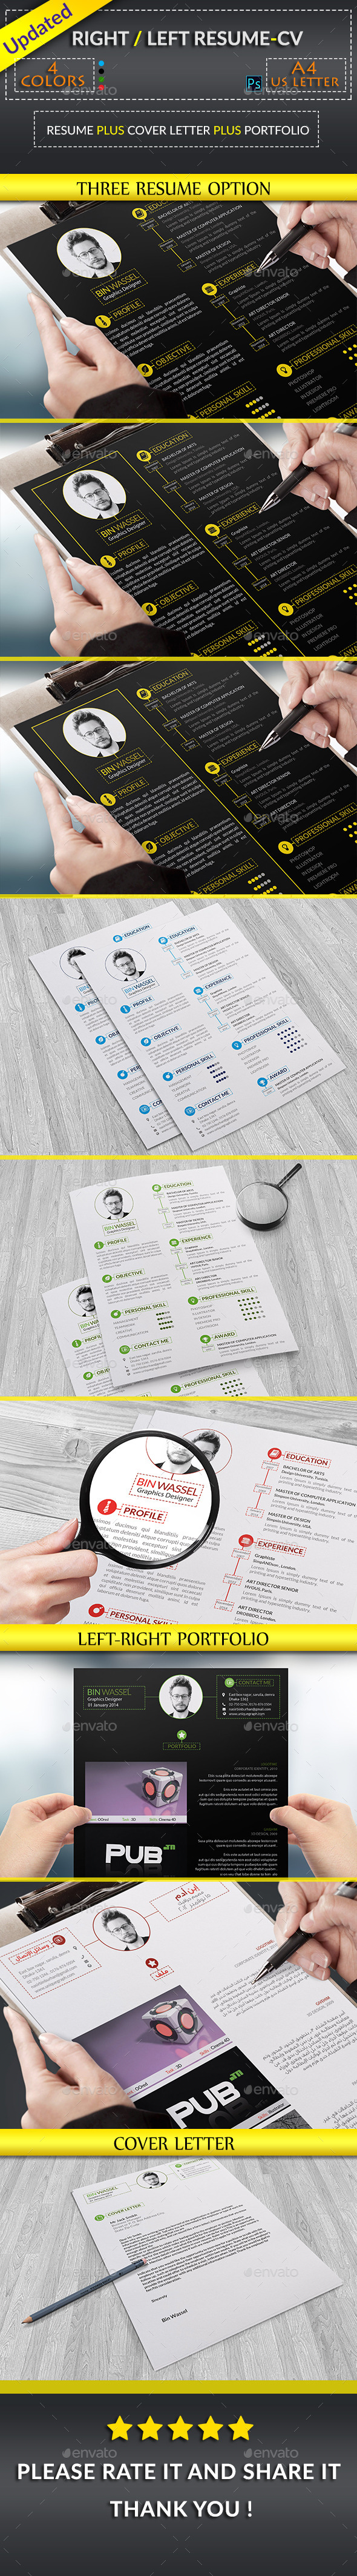 Right Left CV Resume - Resumes Stationery